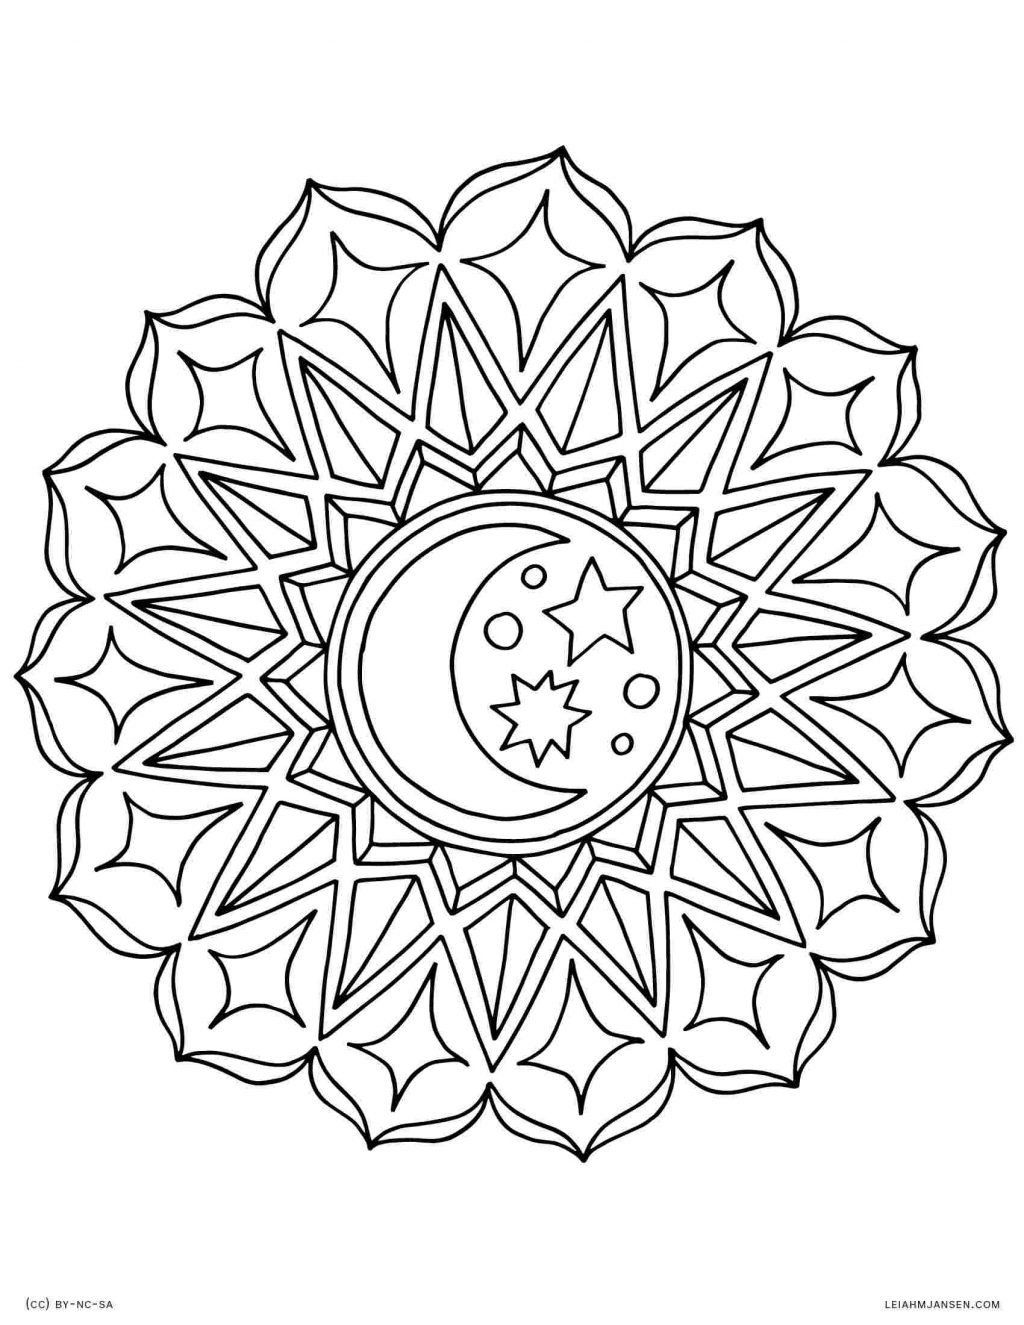 Large Mandala Coloring Pages Coloring Page Coloring Page Fabulous Mandala For Kids Mandala Coloring Pages Mandala Coloring Books Coloring Pages